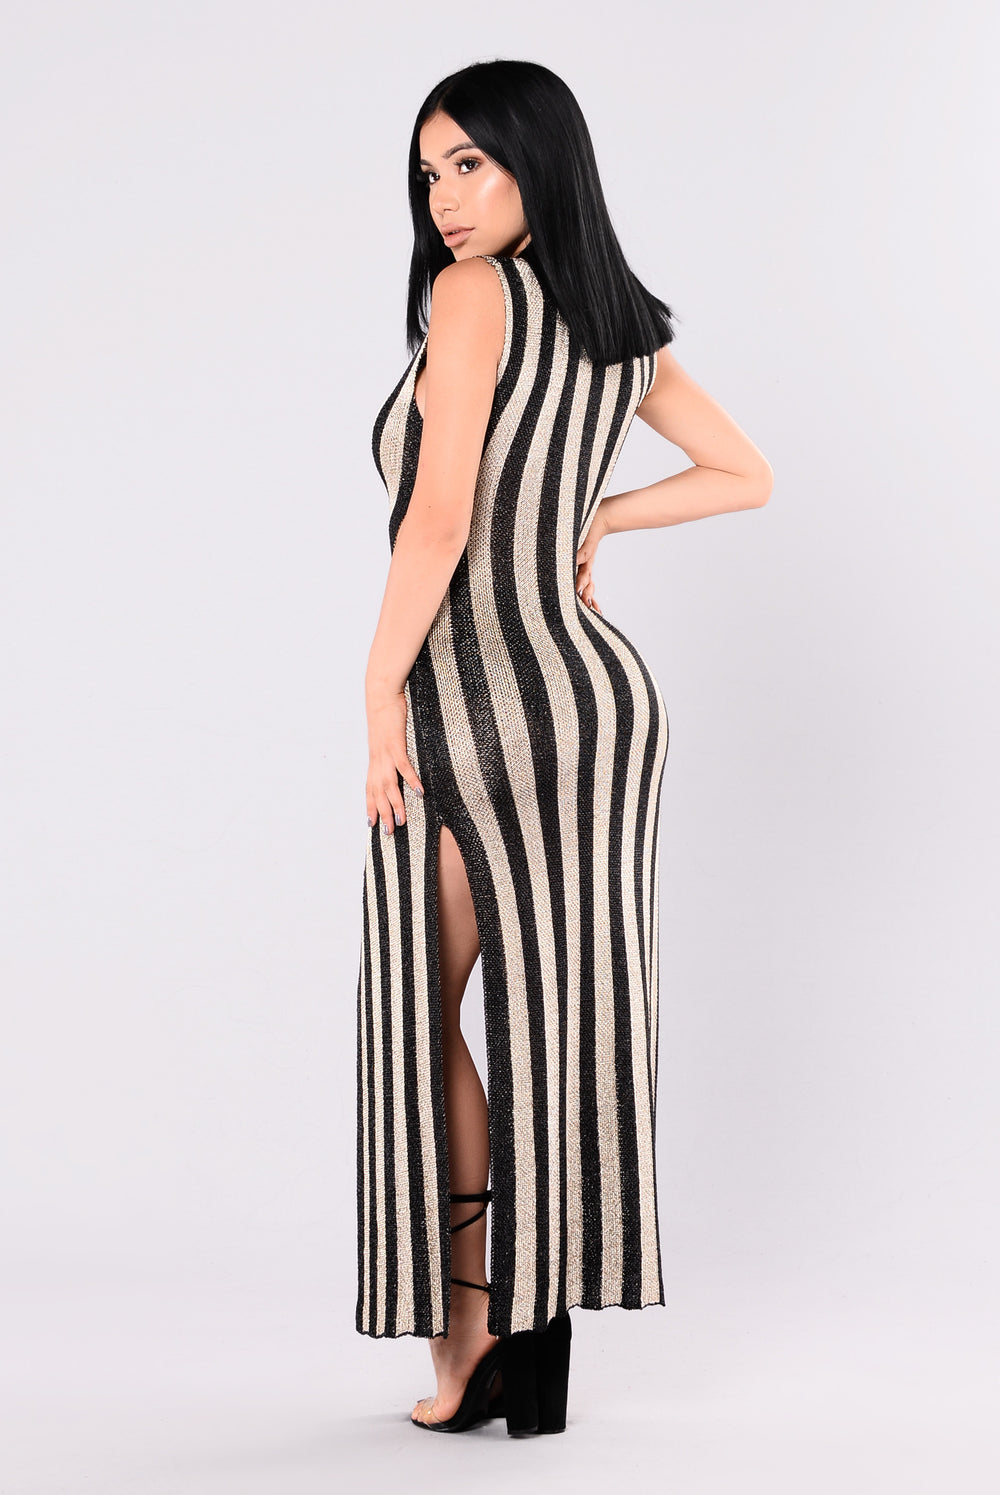 Hollywood Boulevard Striped Dress - Black/Gold